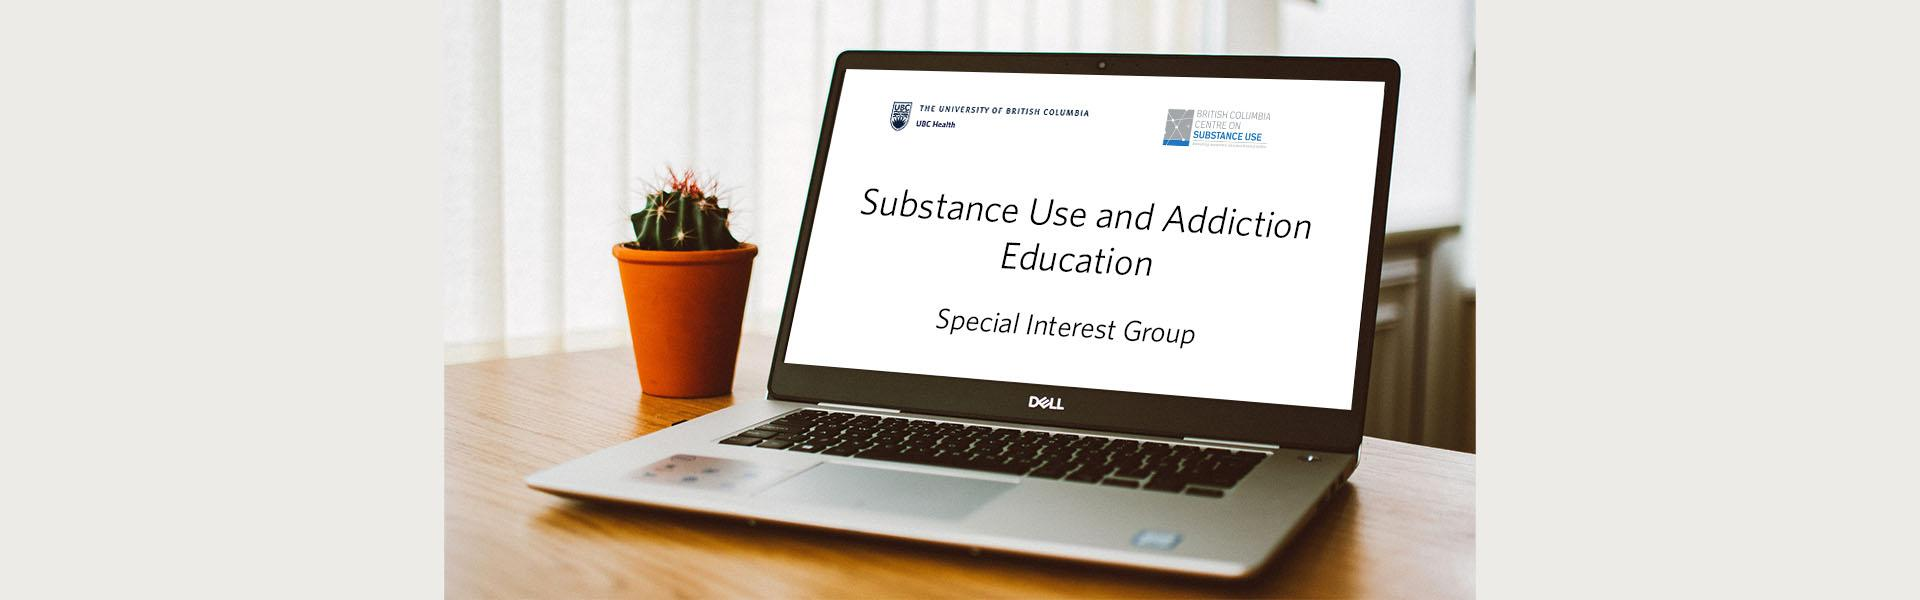 Photo of computer showing substance use and addiction education special interest group